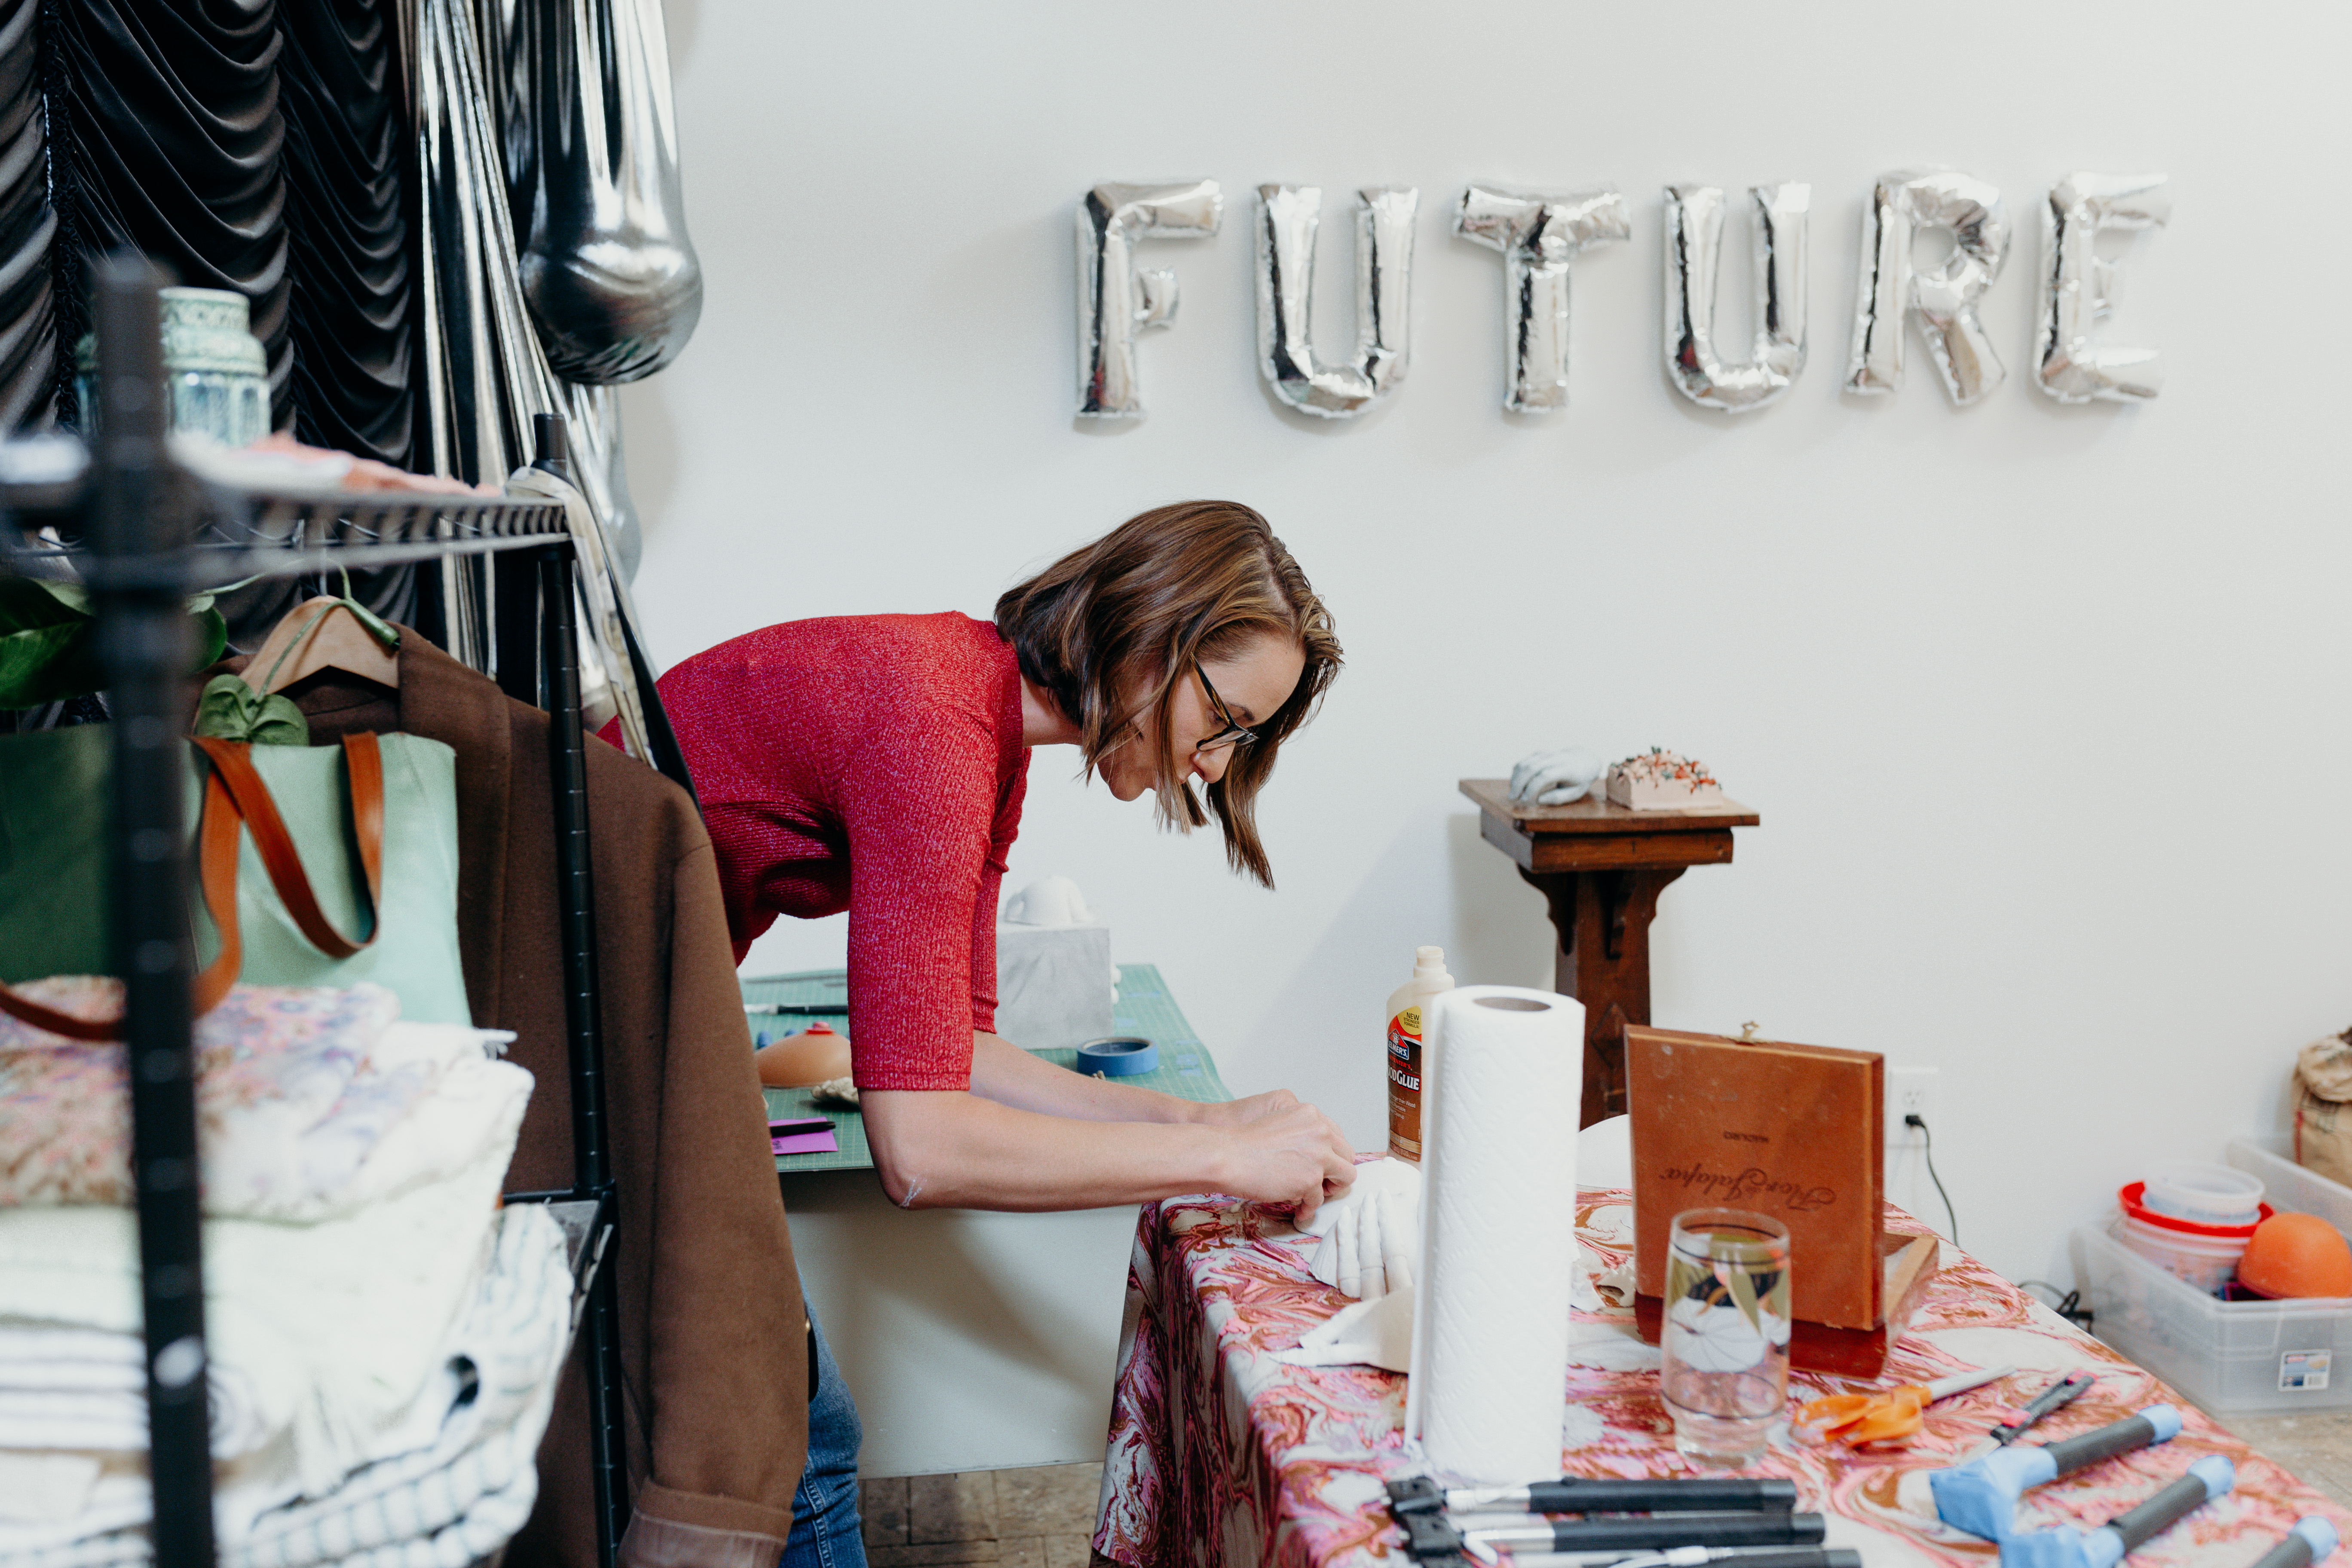 Candid shot of Laura shill working at a table. The words Future are spelled out behind her in silver balloons.